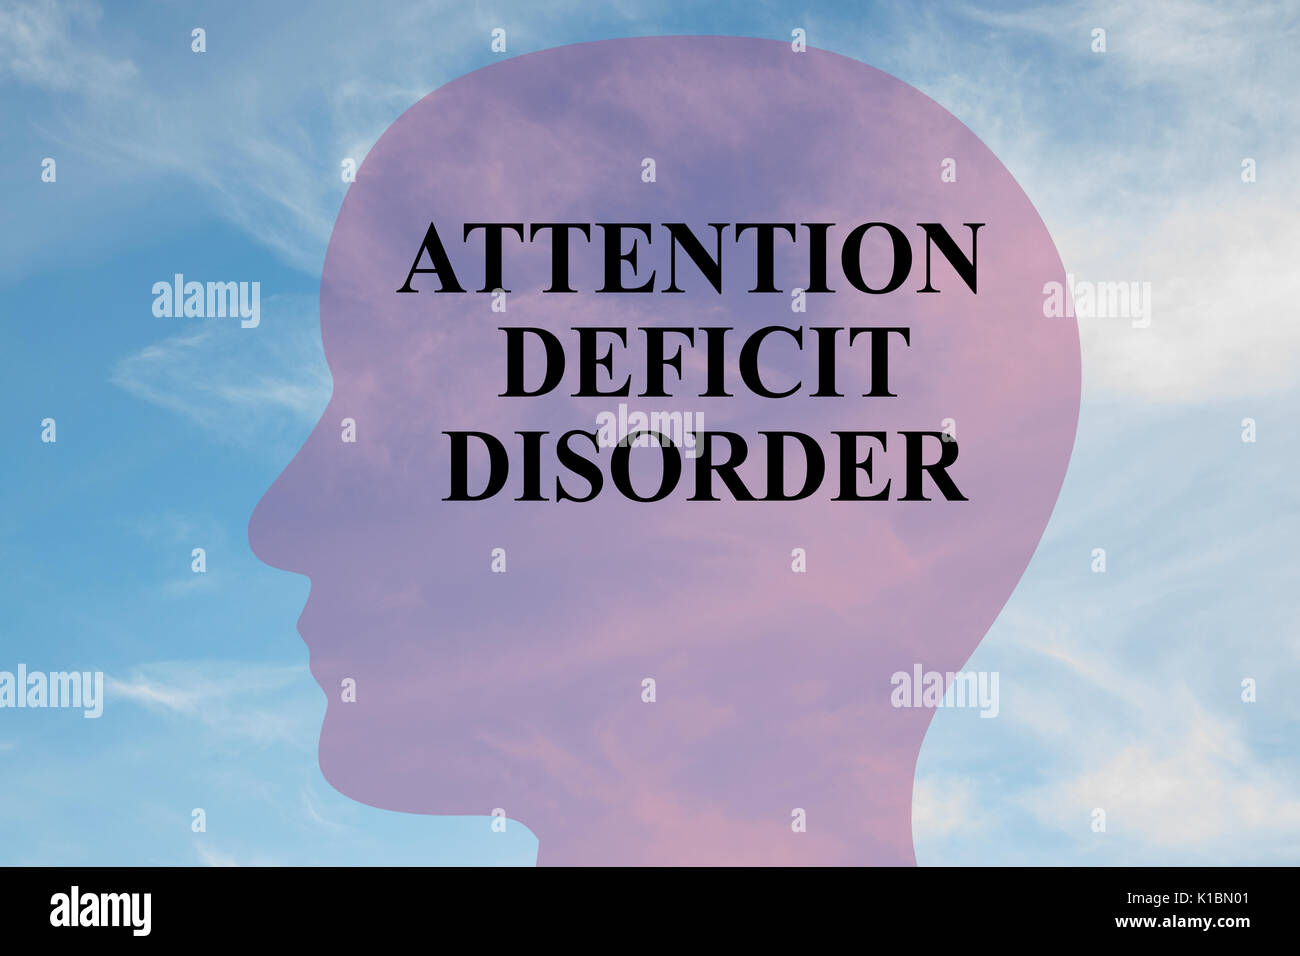 dating attention deficit disorder Attention deficit disorder (add) or attention deficit /hyperactive disorder (adhd) are terms used to describe a condition affecting both children and adults.